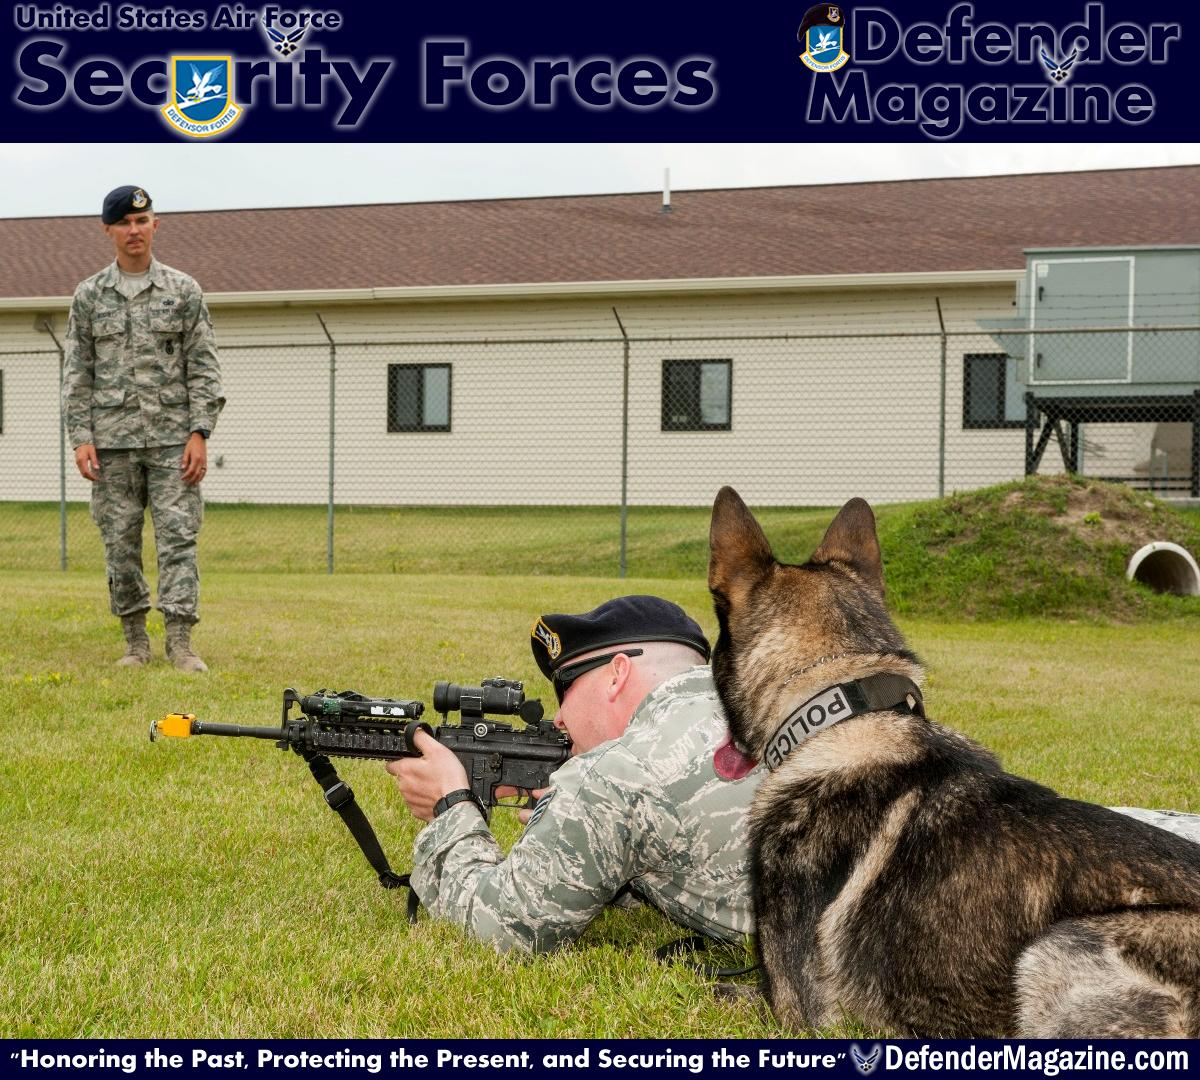 From pup to Alpha Staff Sgt. Christopher Averill, 5th Security Forces Squadron military working dog trainer, observes Staff Sgt. Tim Glover, 5th SFS MWD handler, and his MWD Roko during weapons training on Minot Air Force Base, N.D., July 29, 2014. During training, Averill watched as Glover used blank rounds to test Roko's reaction to the sound of gunfire and assessed Roko's ability to obey commands in a stressful environment. (U.S. Air Force photo/Senior Airman Stephanie Morris)